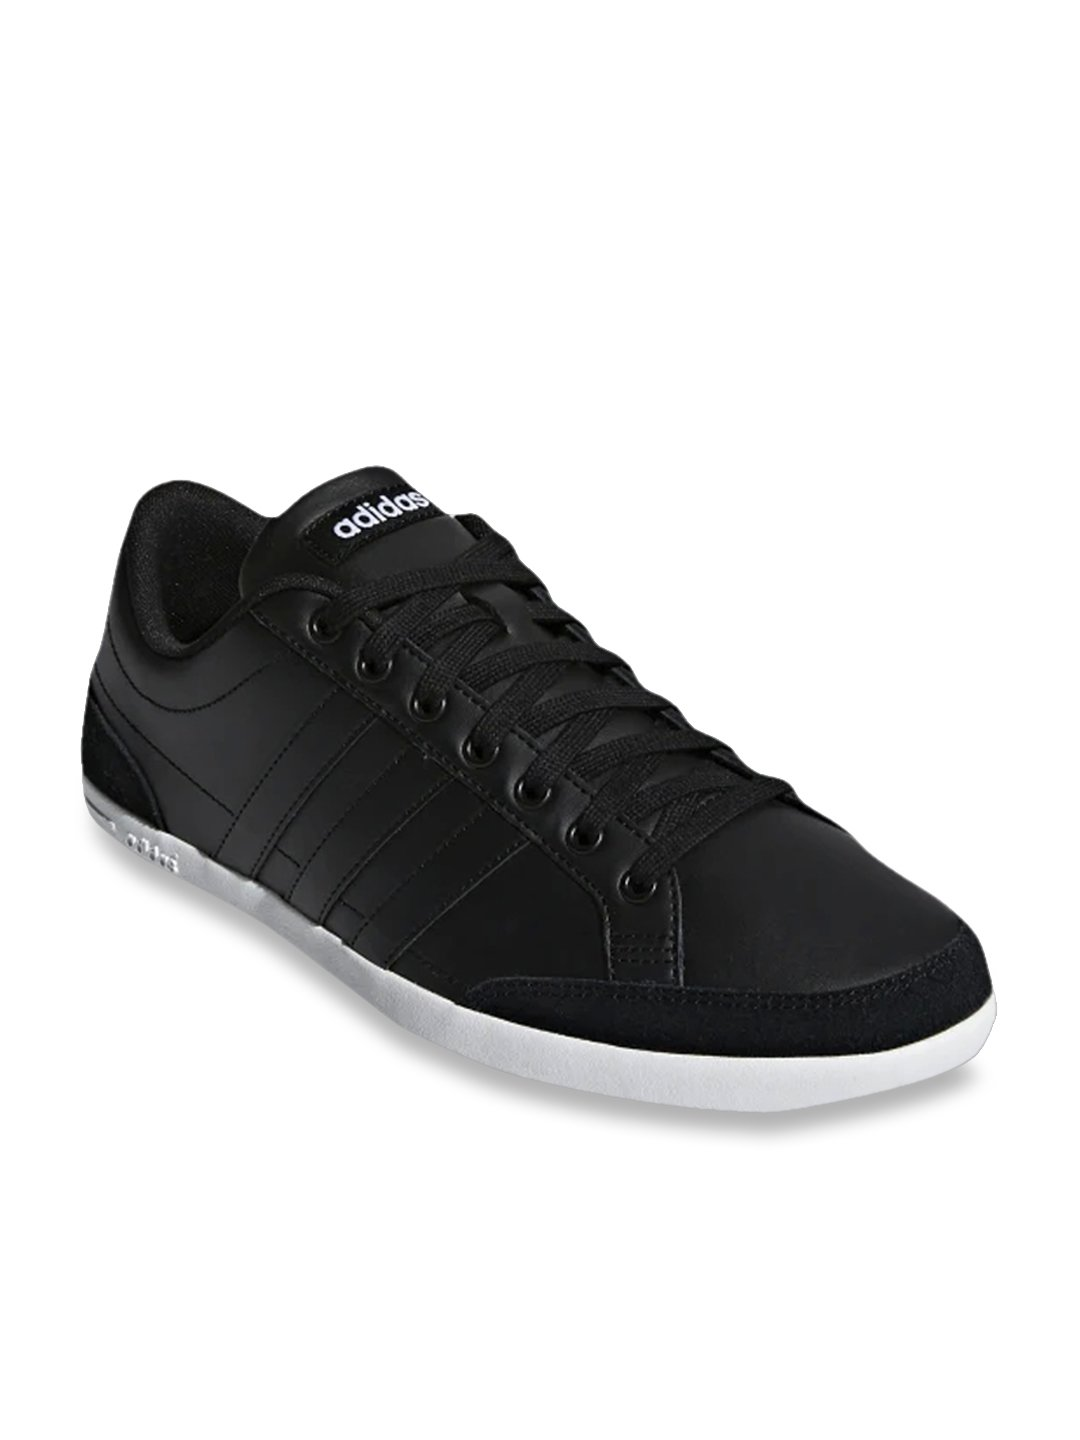 Adidas Caflaire Black Sneakers from